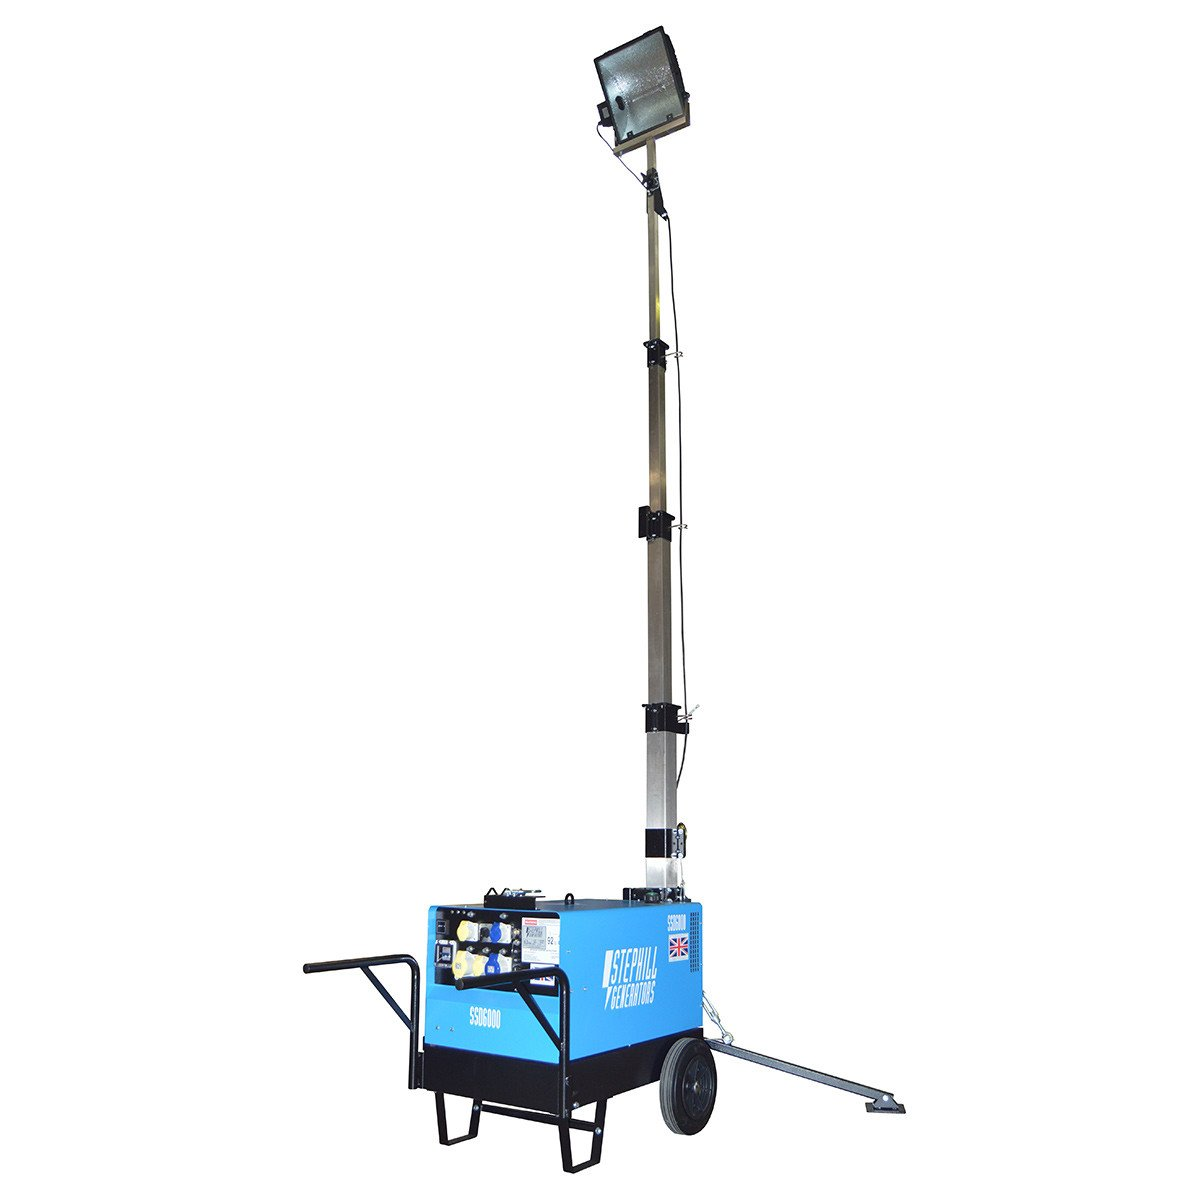 6.0 KVA Portable Lighting Tower